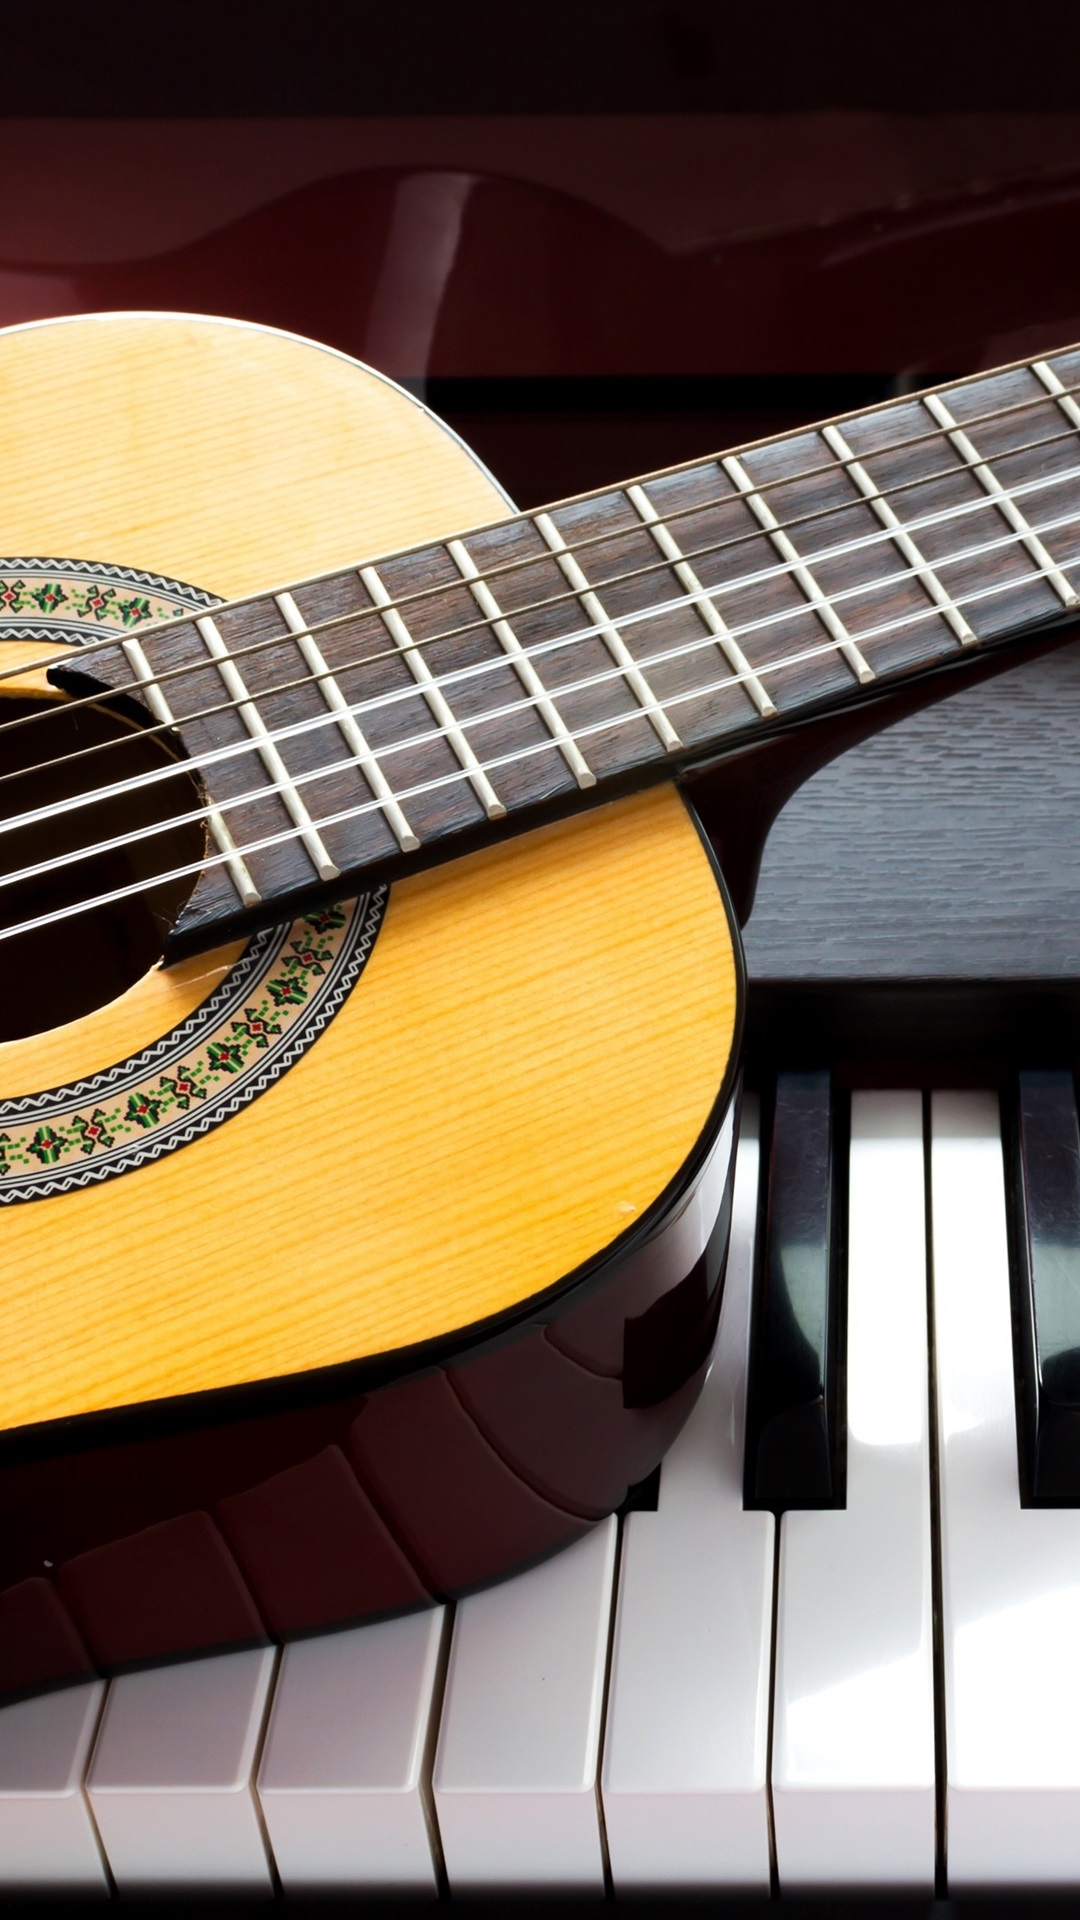 Guitar And Piano Music Theme 1080x1920 Iphone 8 7 6 6s Plus